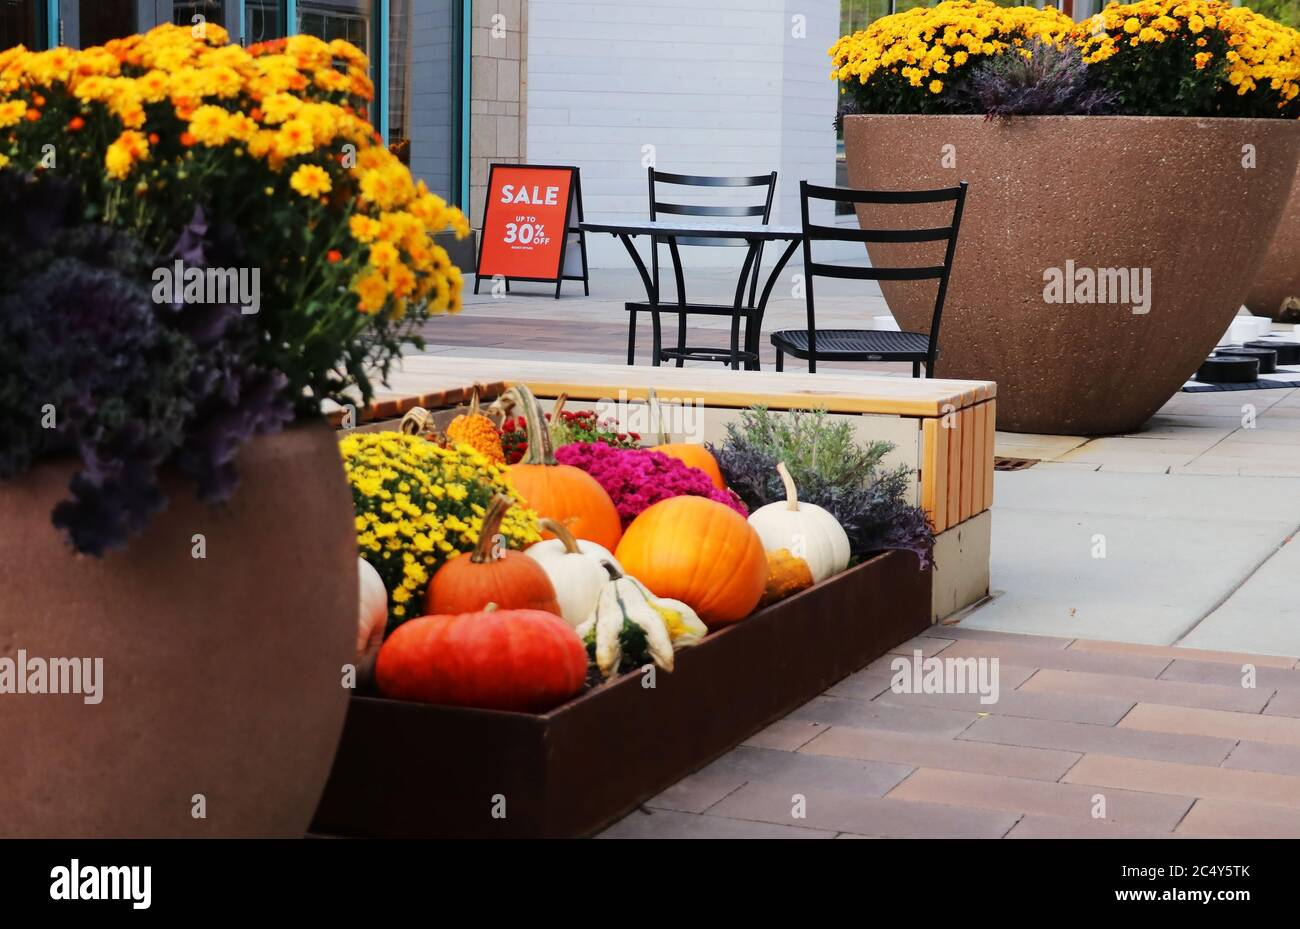 Furniture Outlet High Resolution Stock Photography And Images Alamy - Garden Furniture Clearance Poole Dorset